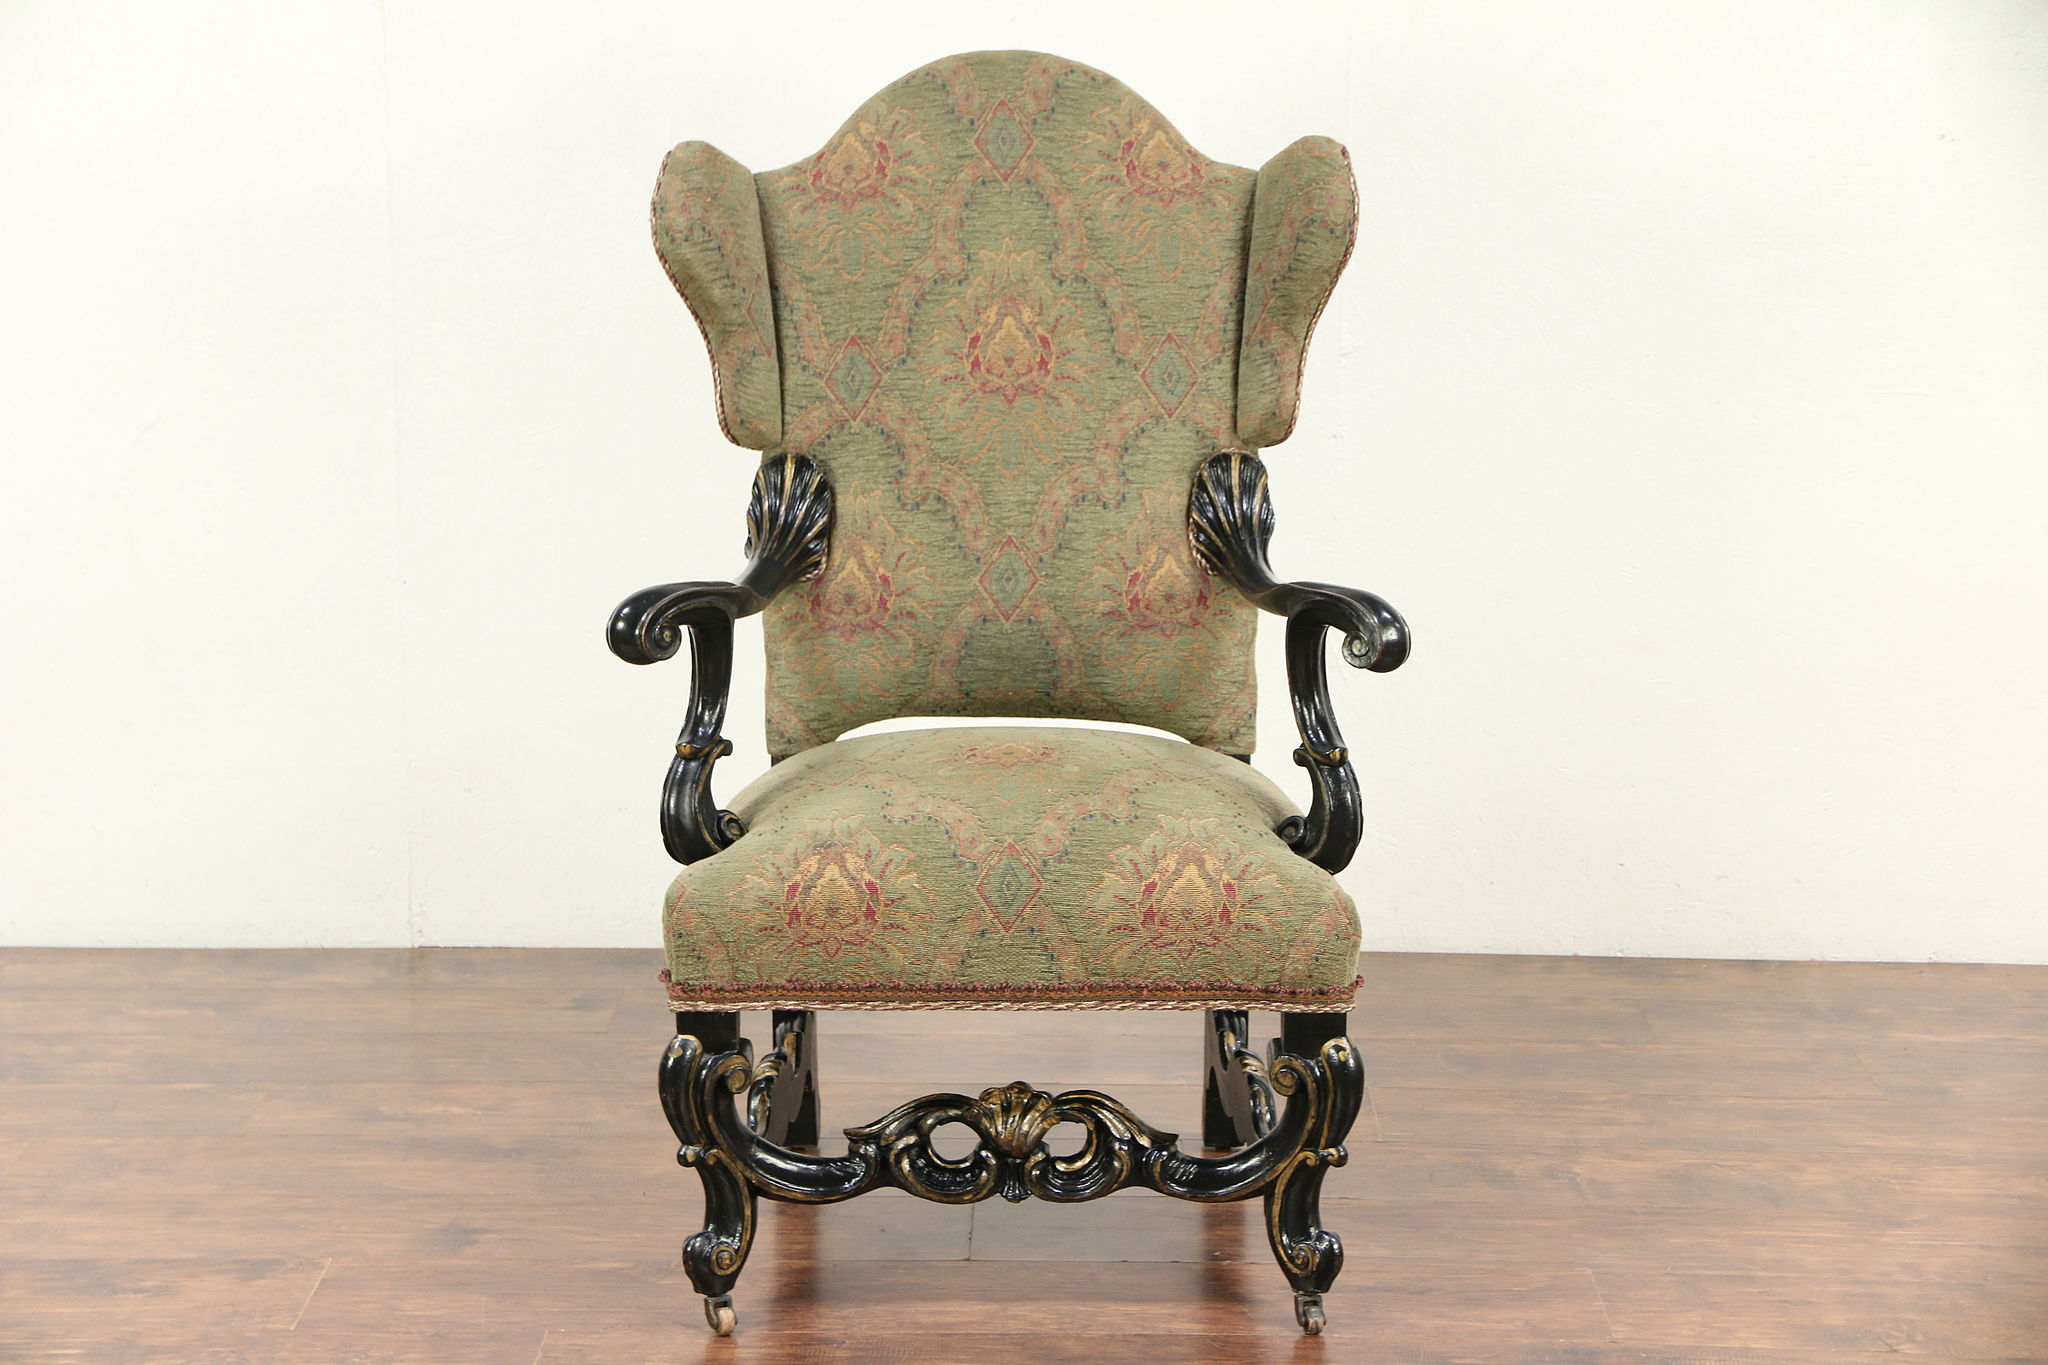 Carved Oak Antique French Wing Chair, Recent Tapestry Upholstery #29628 ...